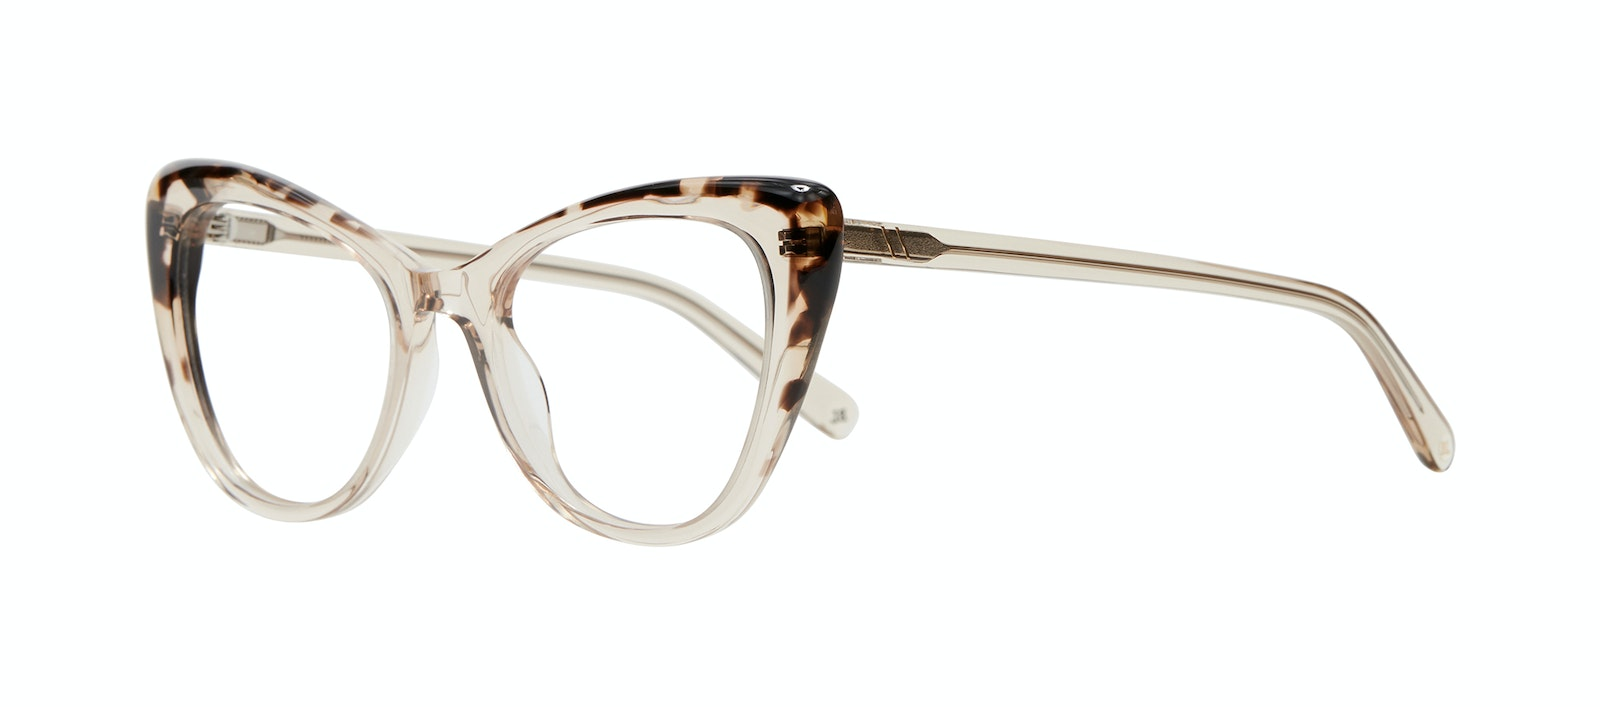 Affordable Fashion Glasses Cat Eye Eyeglasses Women Verve Golden Tortoise Tilt